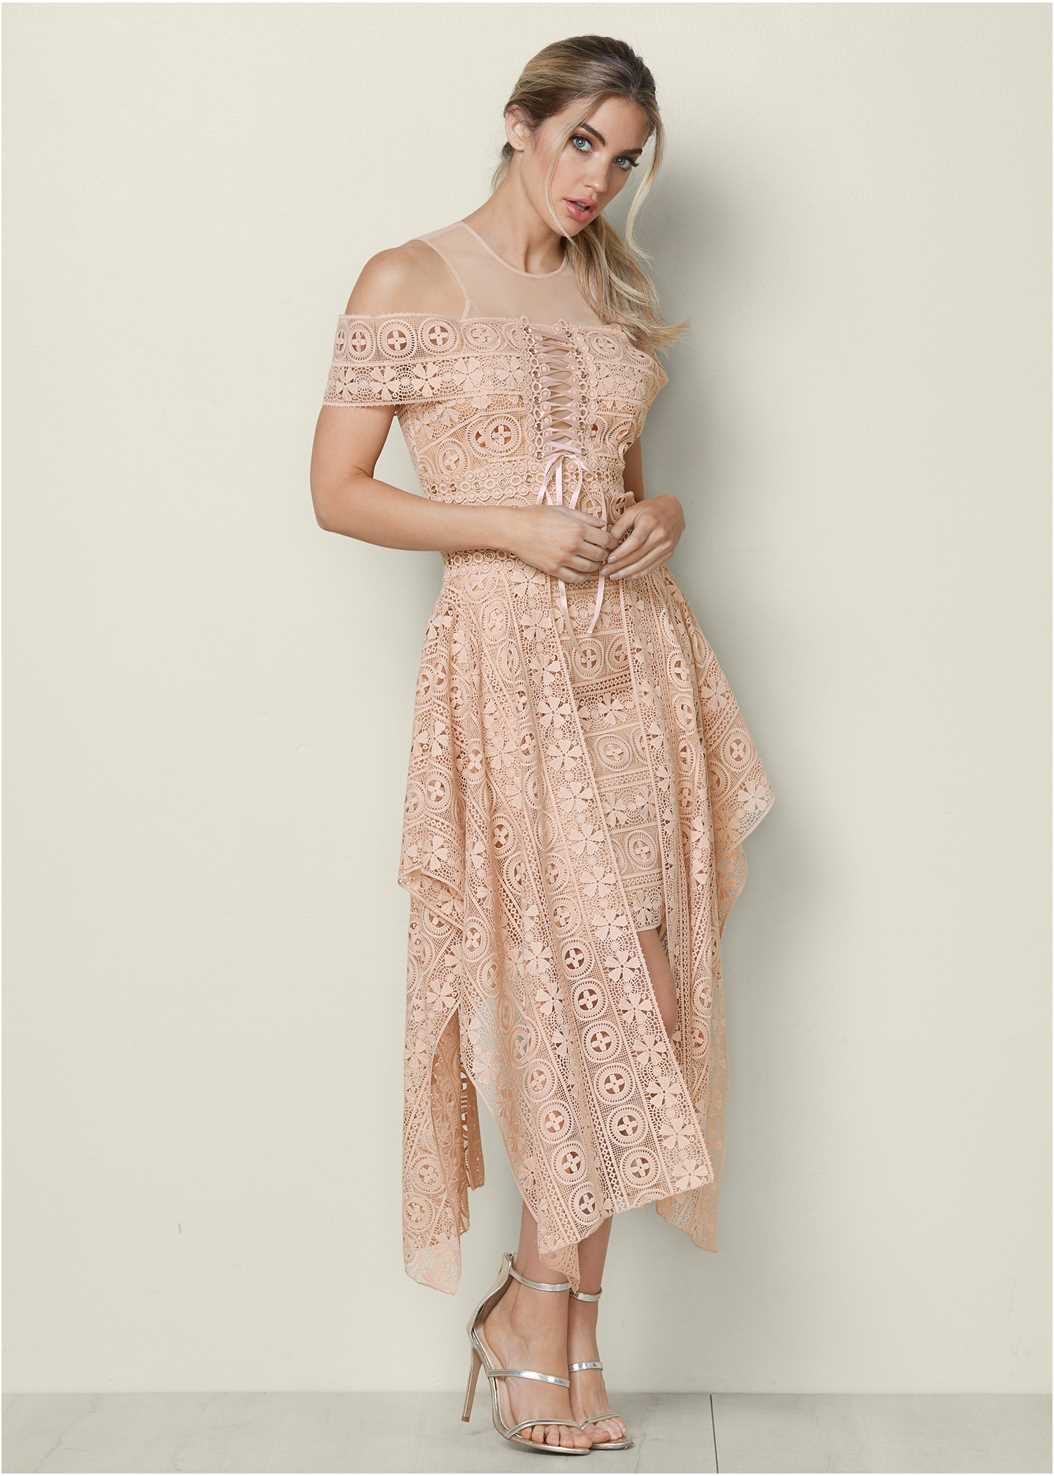 Lace Up Detail Lace Dress,High Heel Strappy Sandals